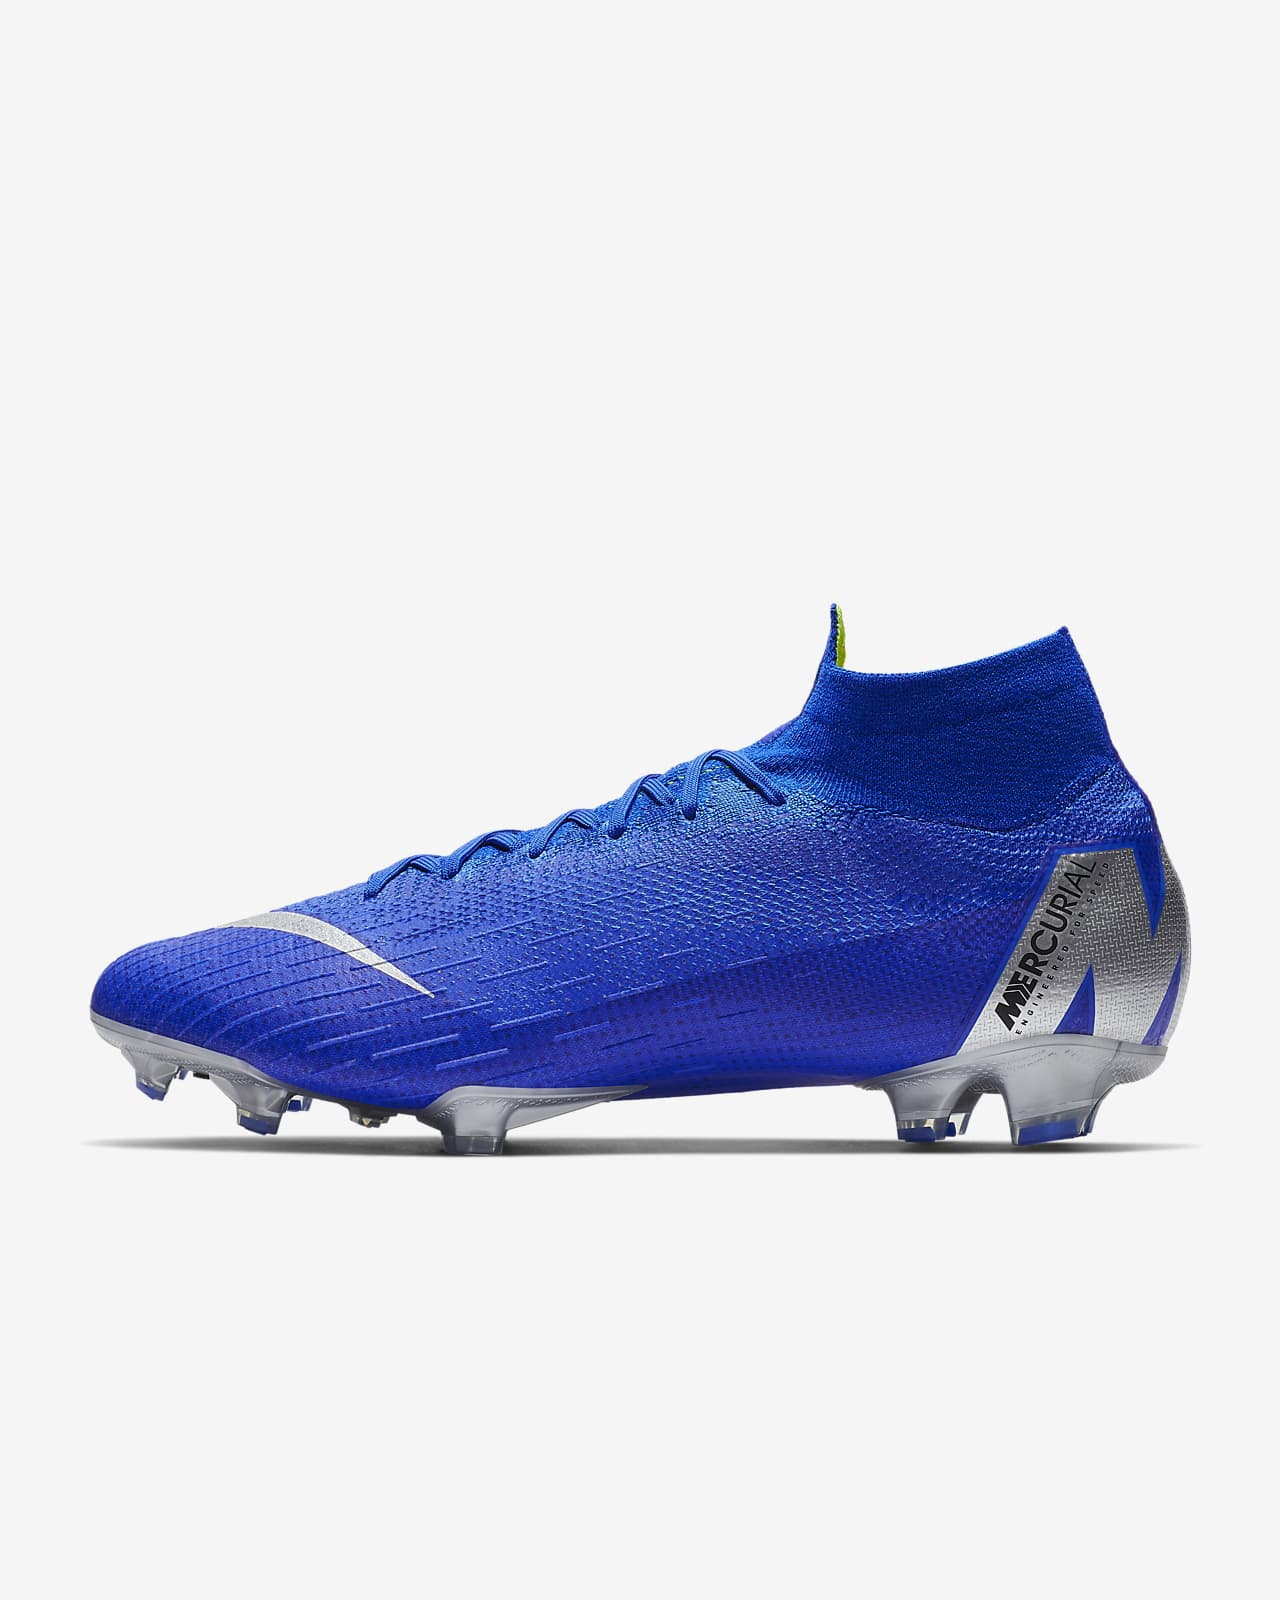 tramo Sostener Bienes diversos  Nike Superfly 6 Elite FG Firm-Ground Soccer Cleat. Nike.com